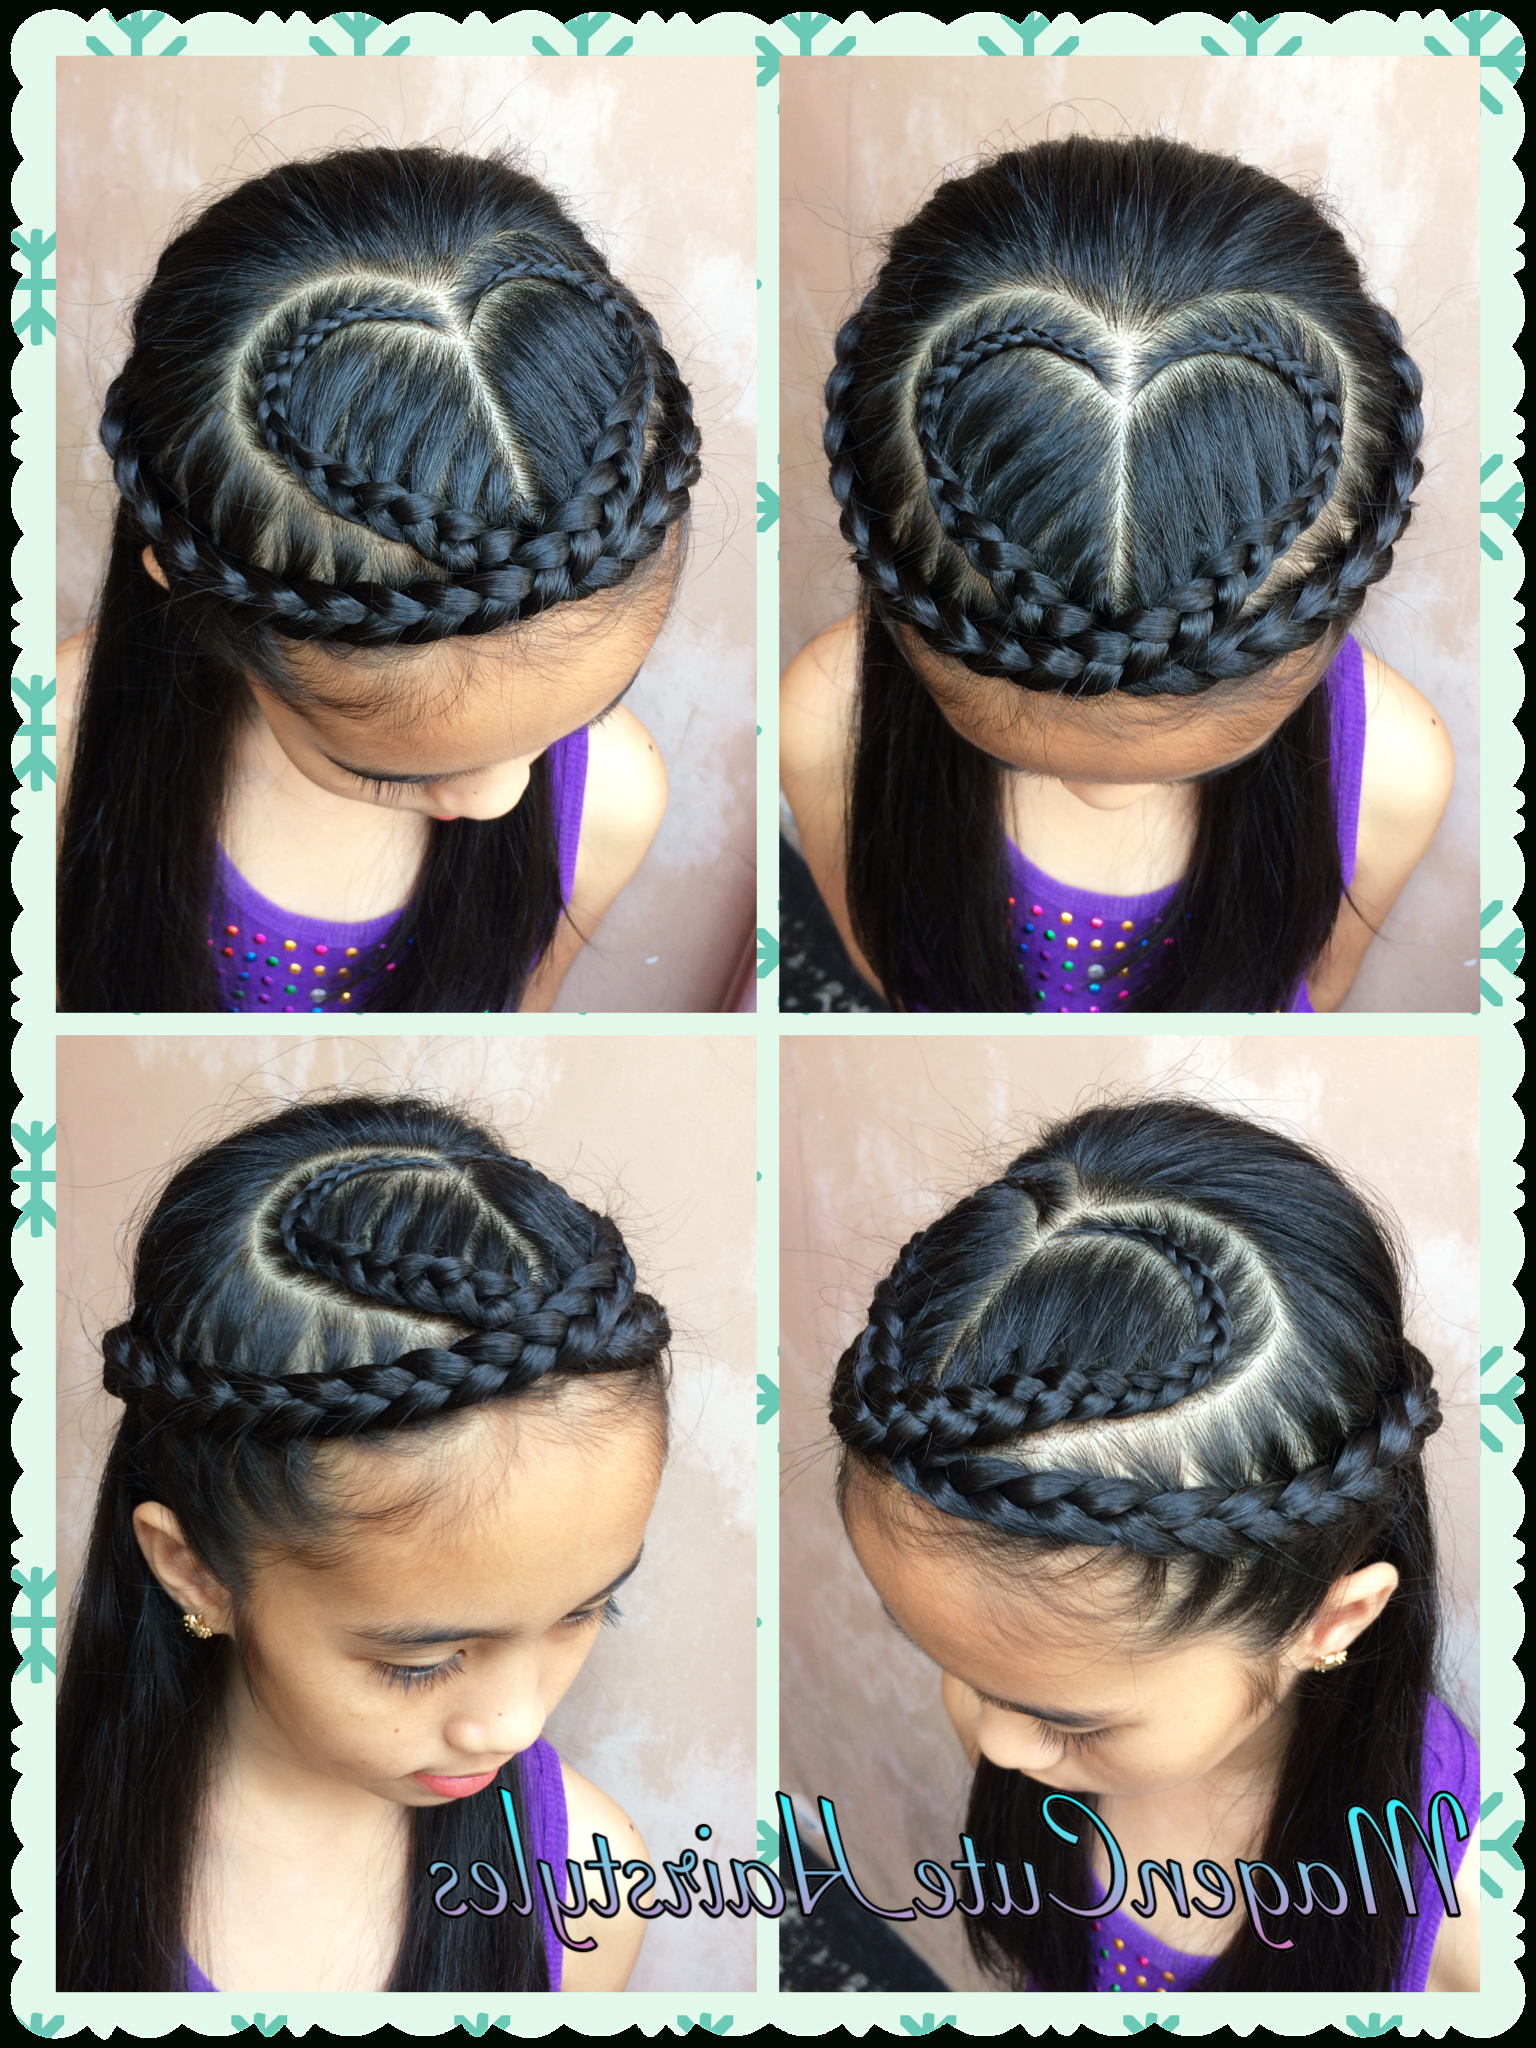 Heart Shape Dutch Lace Braid Intended For 2019 Heart Shaped Fishtail Under Braid Hairstyles (View 12 of 20)